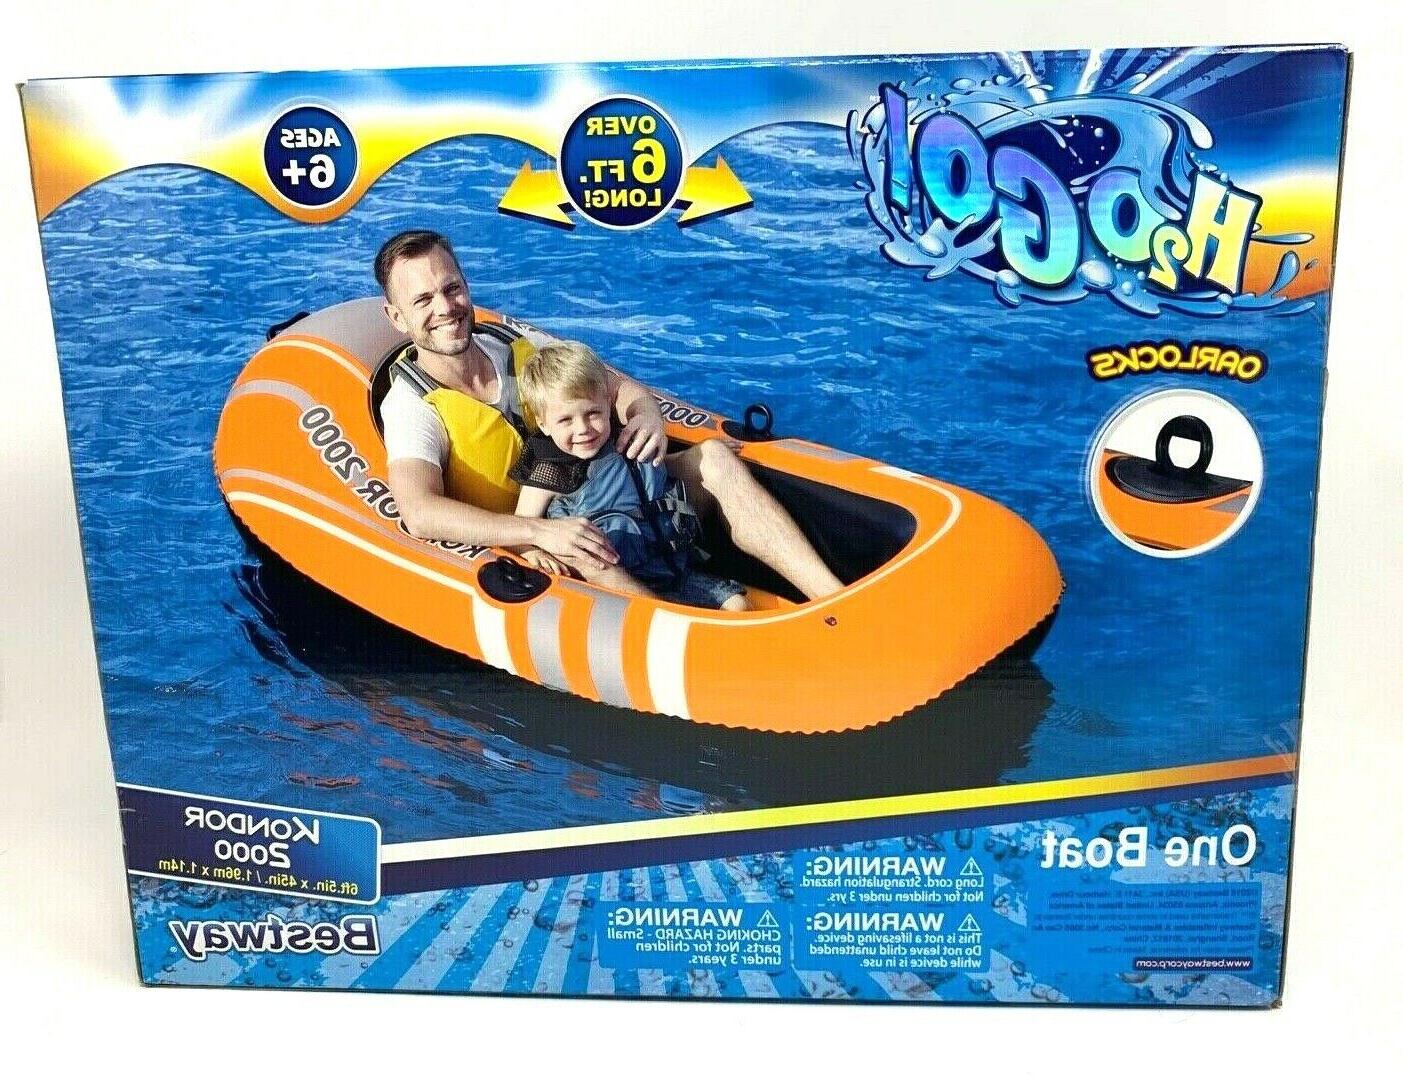 kondor 2000 two person river boat inflatable